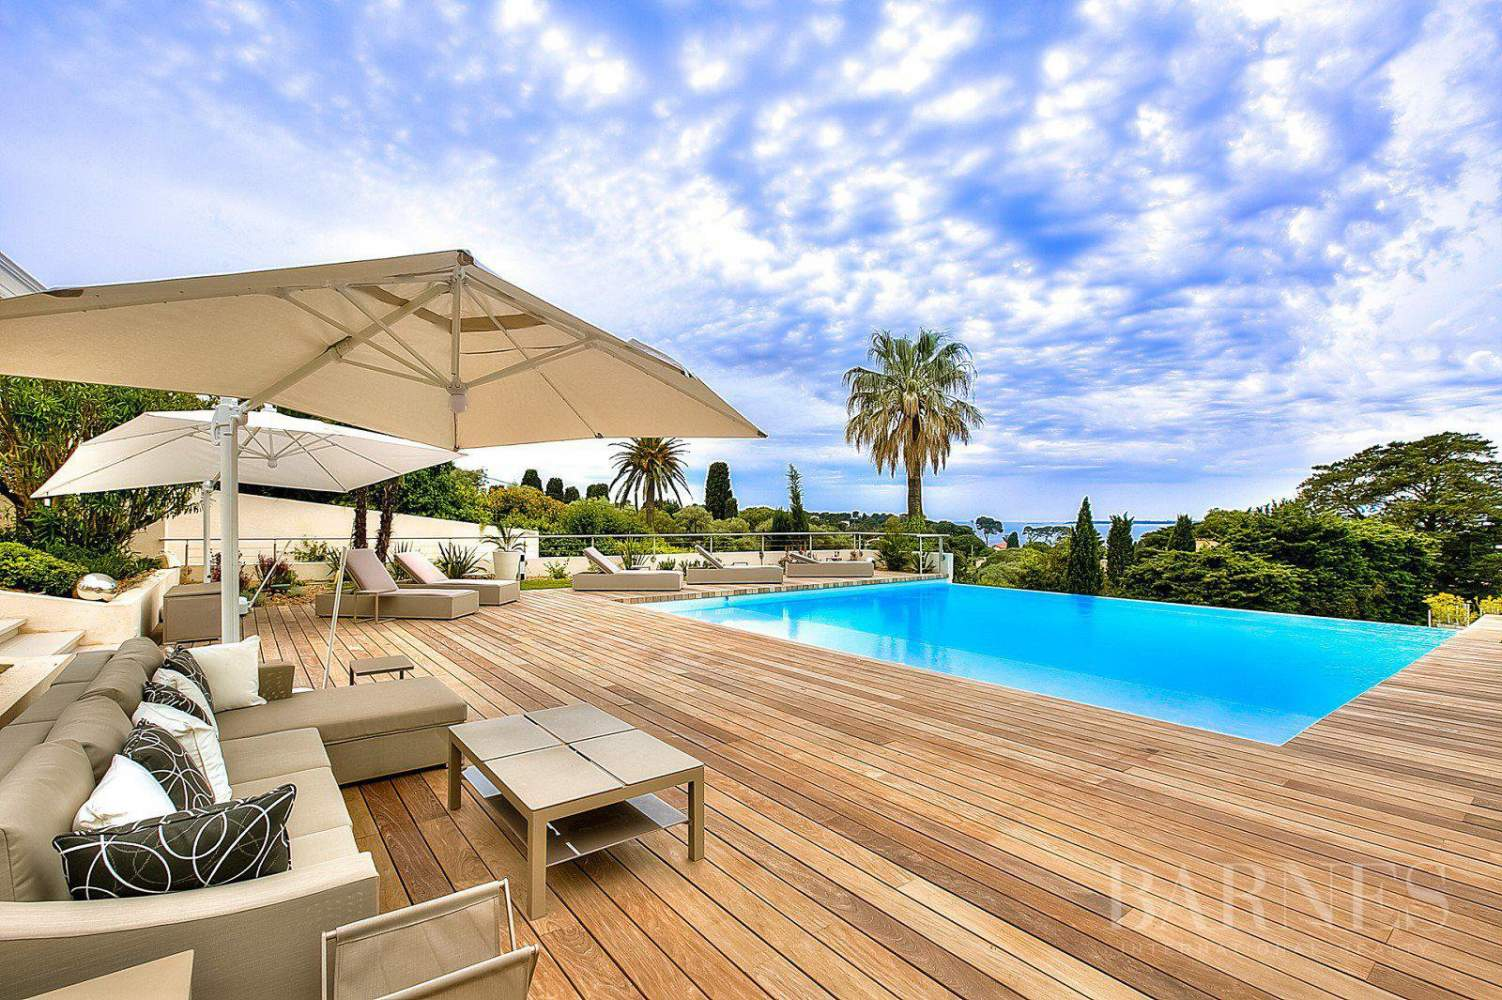 CAP D'ANTIBES - CONTEMPORARY VILLA - PANORAMIC SEA VIEW - 6 BEDROOMS picture 1